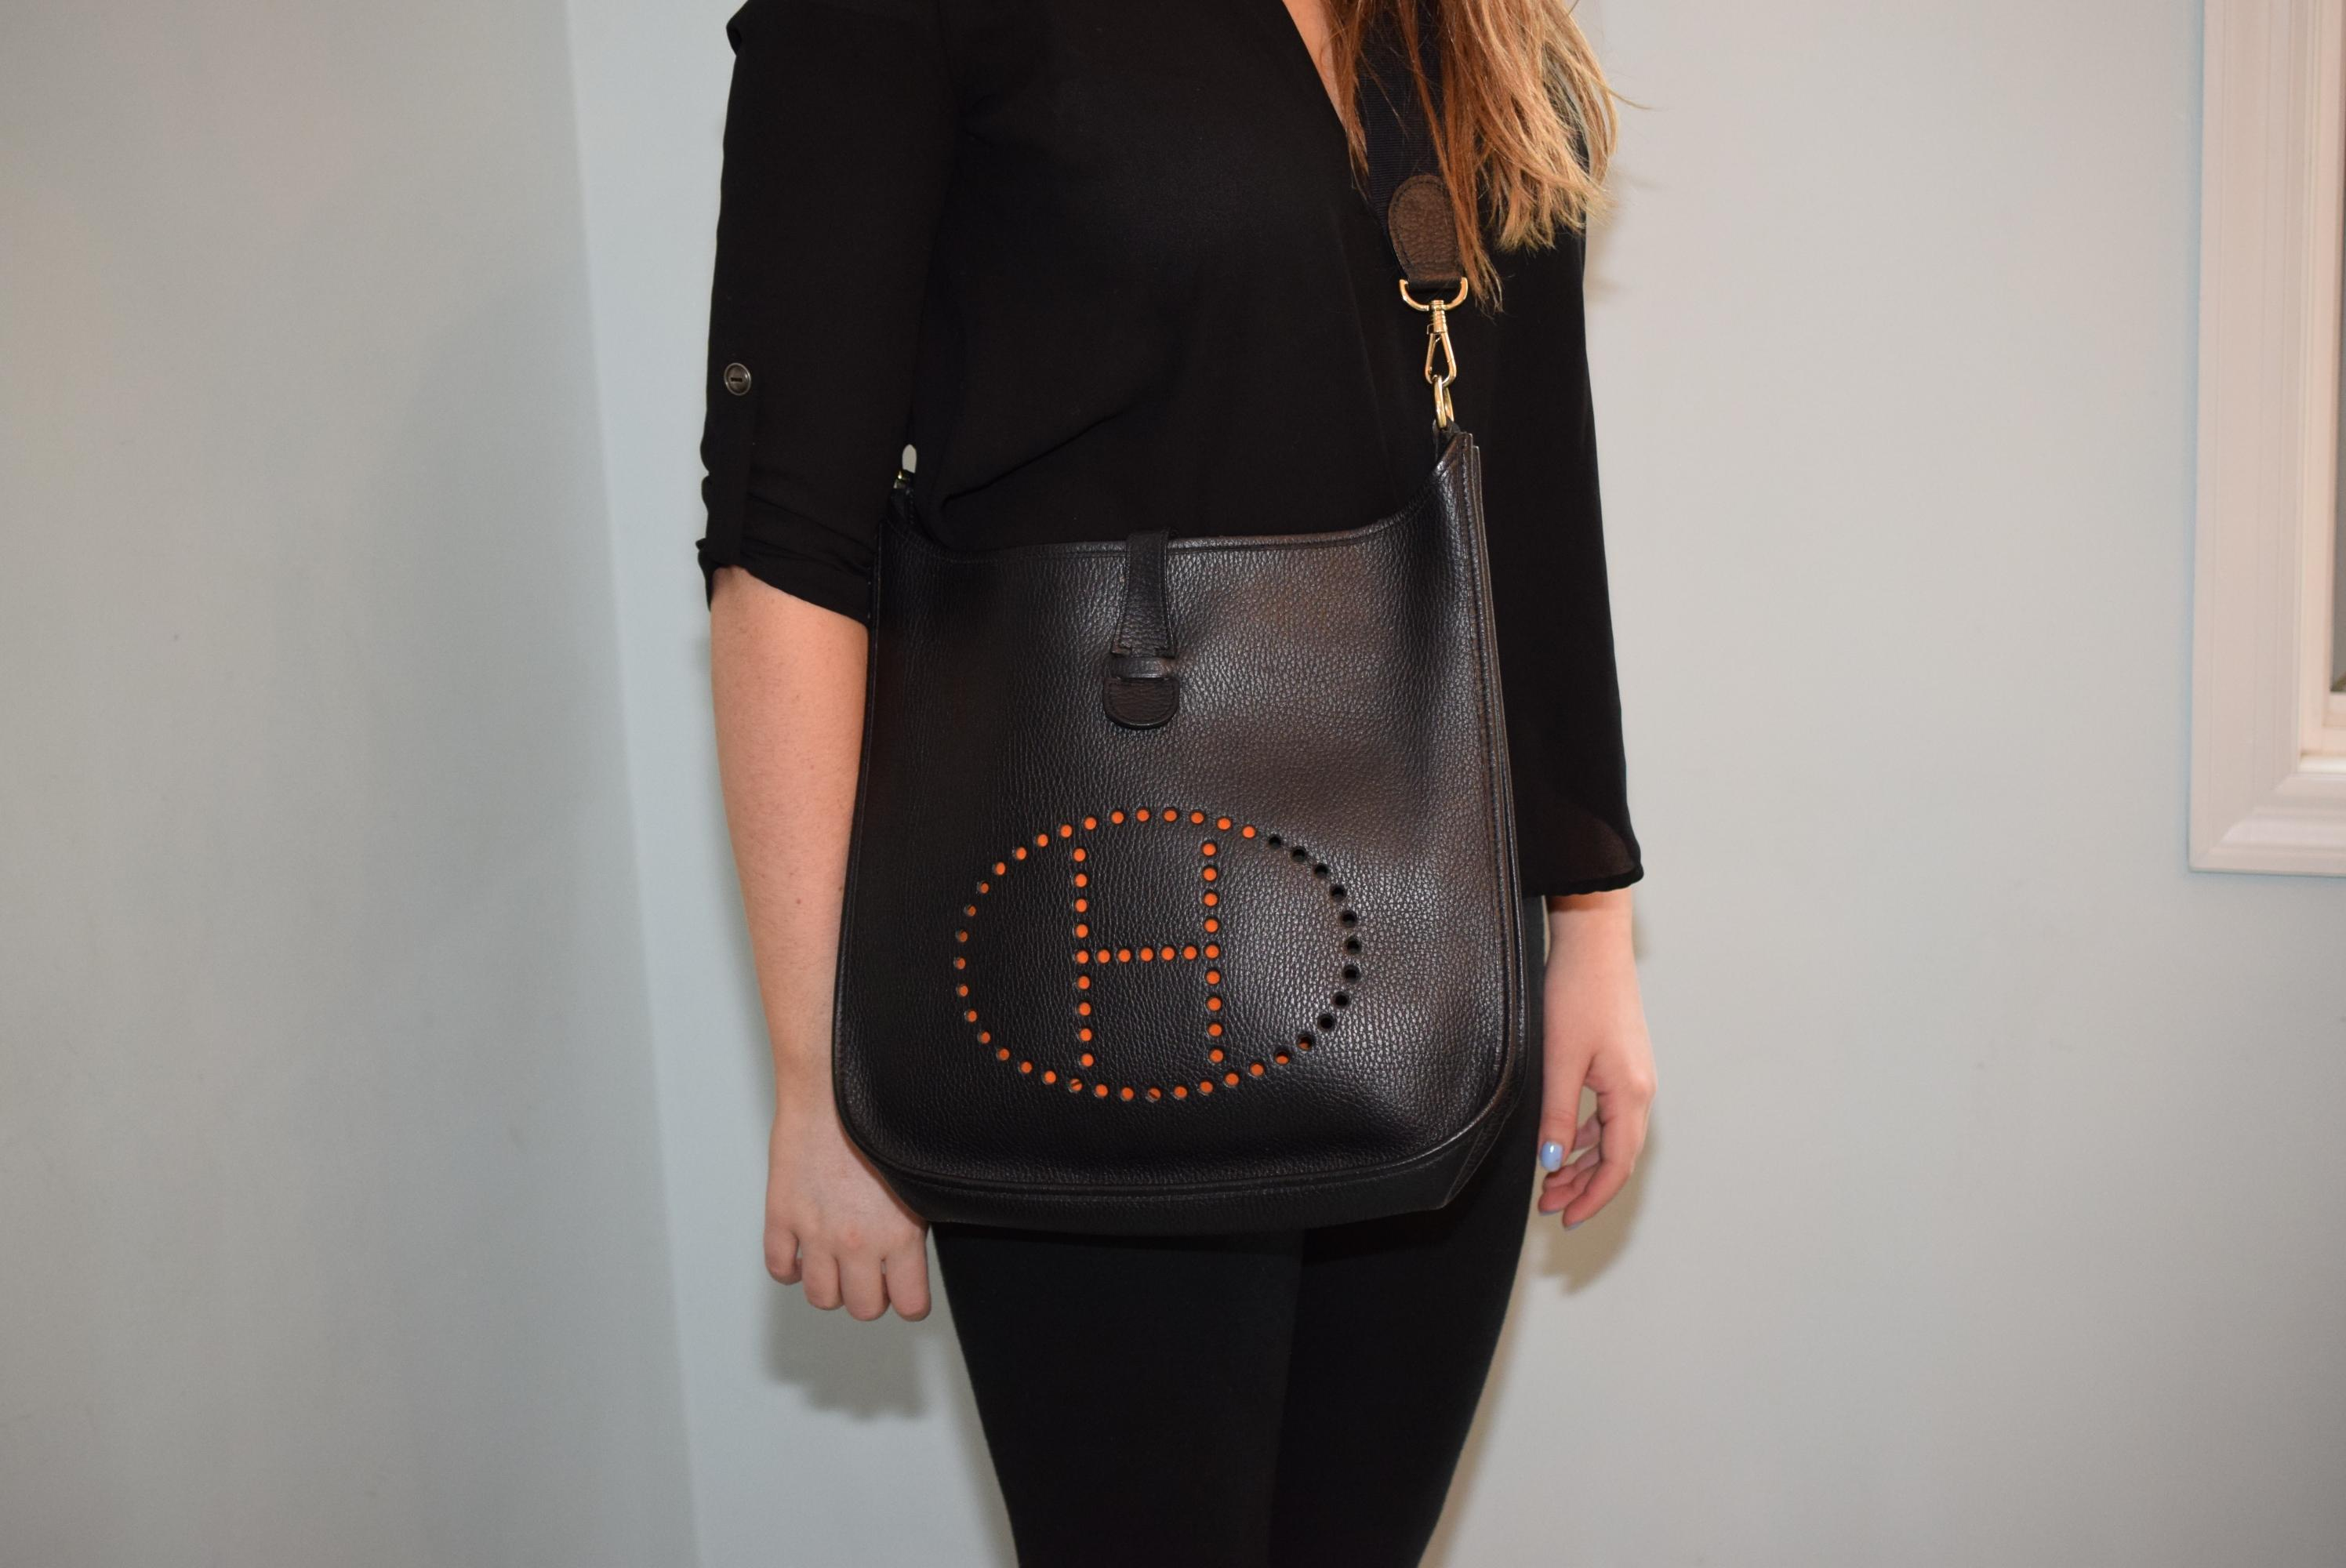 d252828759 ... coupon for hermès evelyne gm black leather clemence cross body bag  tradesy 6013d 0c21e ...